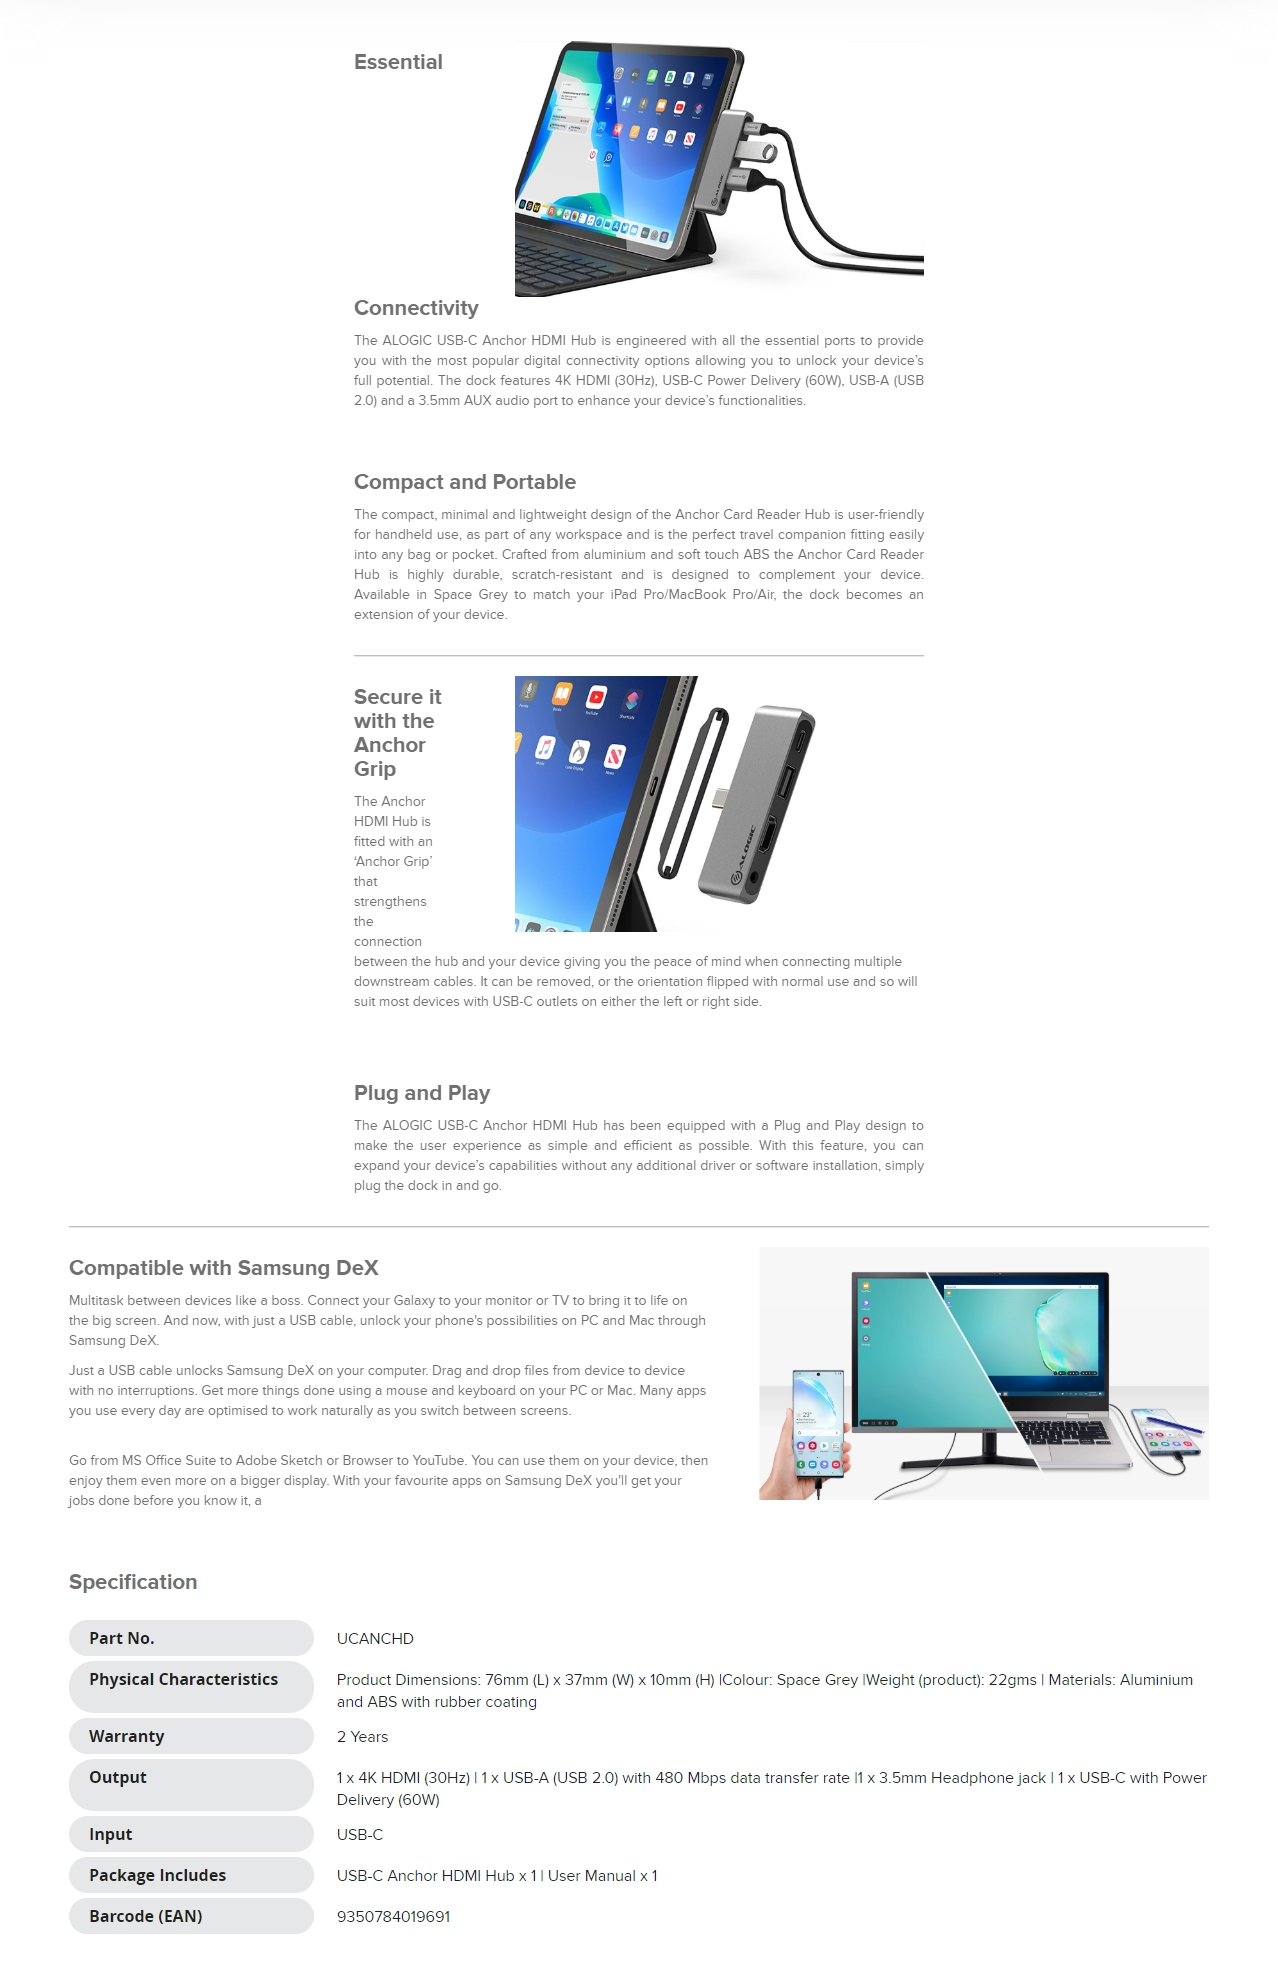 A large marketing image providing additional information about the product ALOGIC USB- C Anchor HDMI Hub - Additional alt info not provided